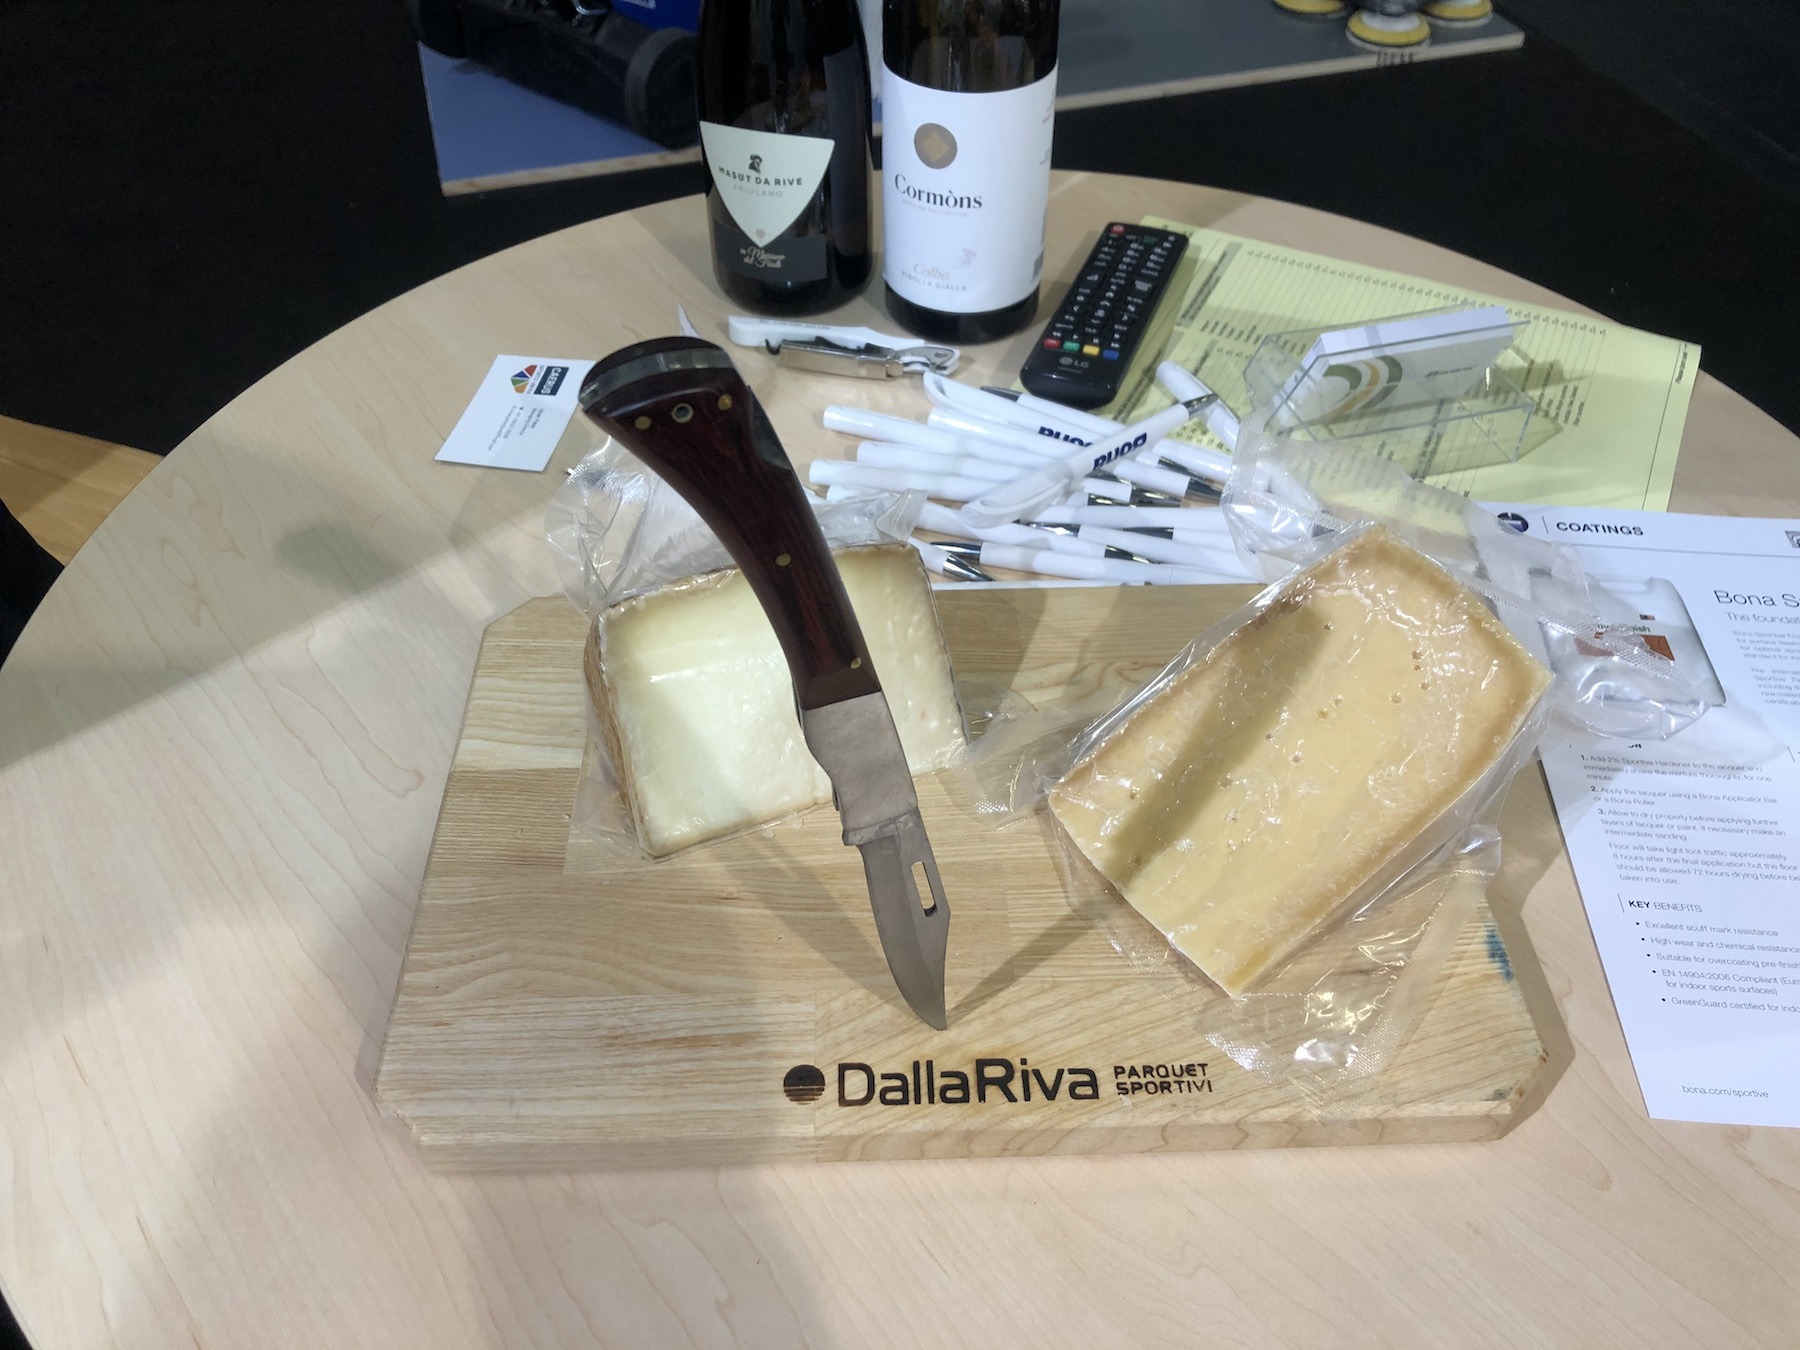 A moment of relaxation during the fair with cheese and wine made in Italy